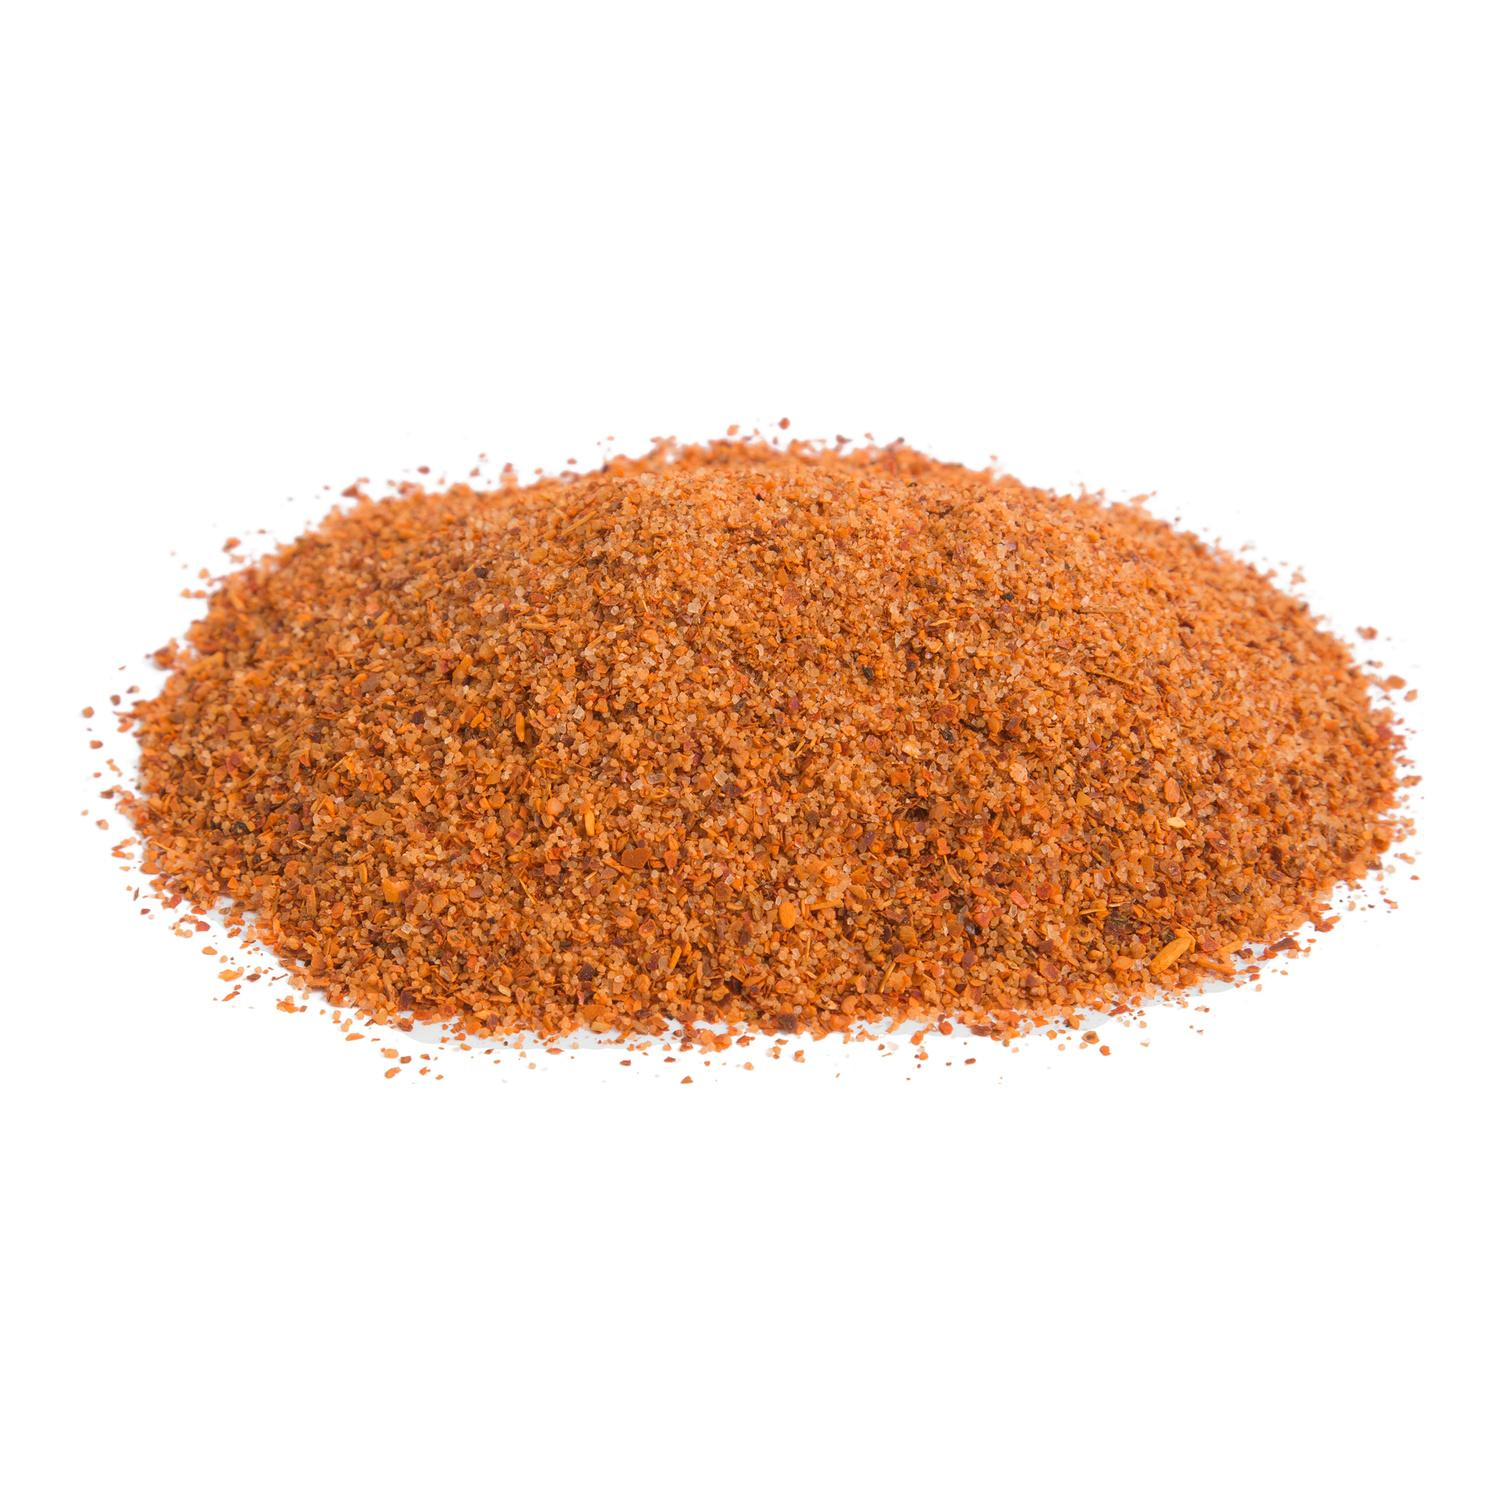 image of Tajin